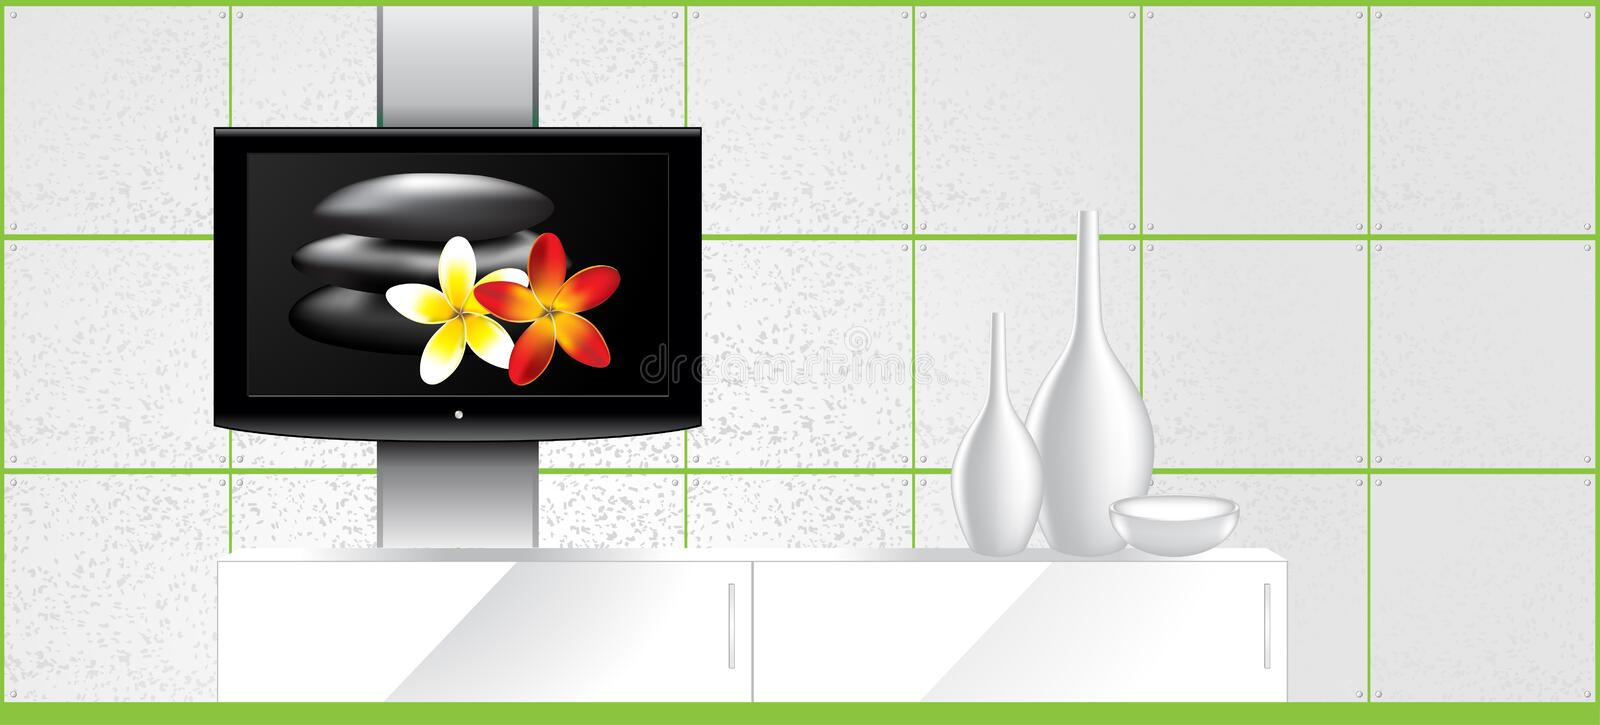 Home Interior - LCD Tv On The Wall And Decorations Royalty Free Stock Image